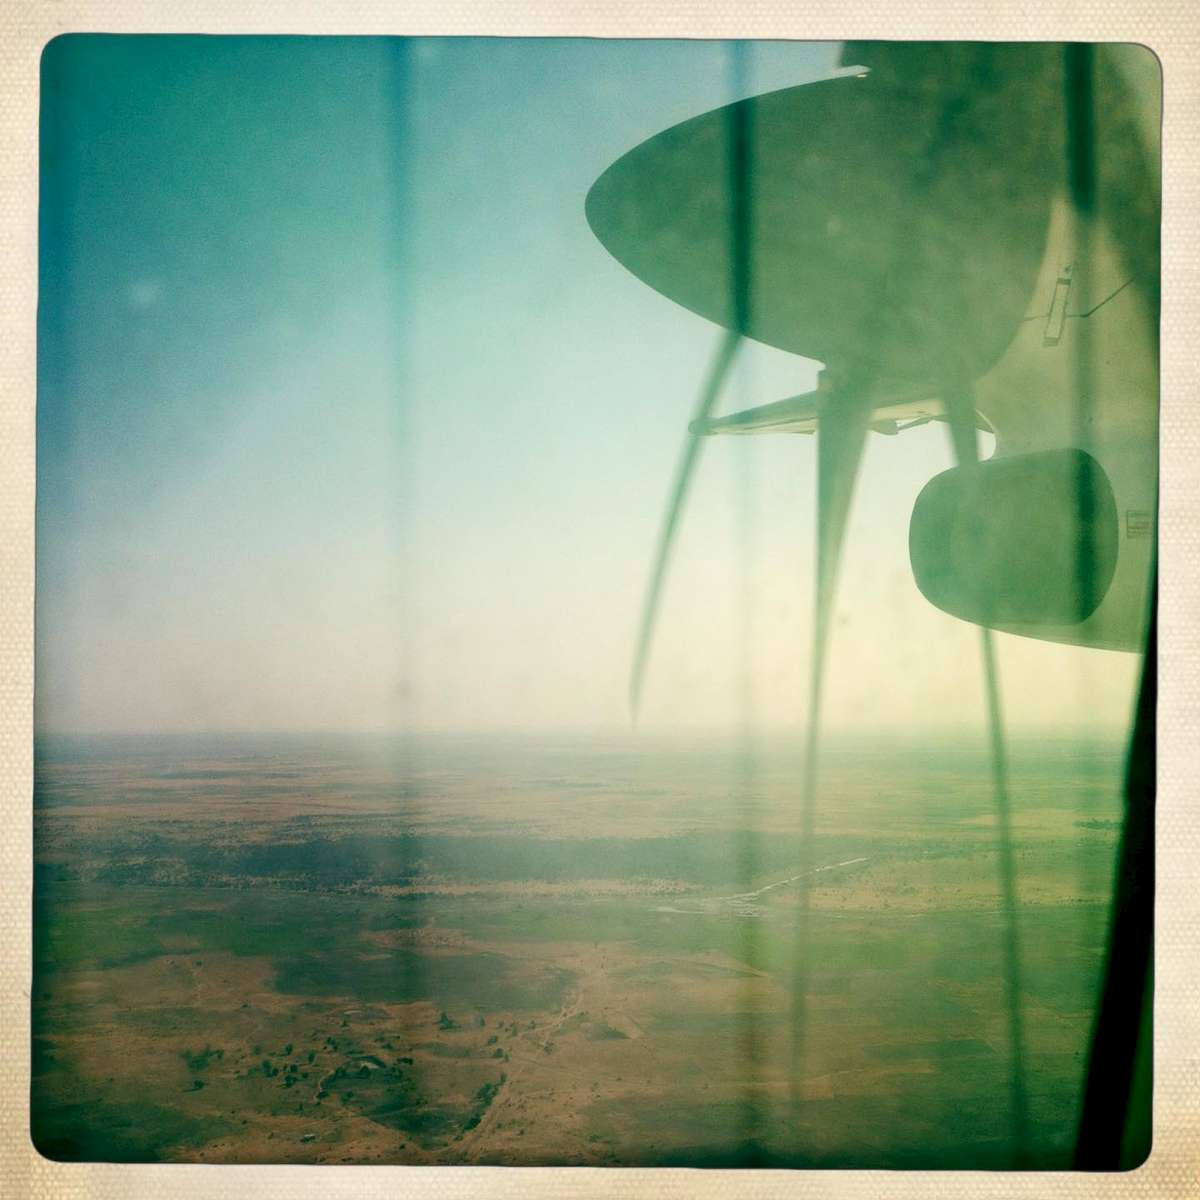 Flying over Chad. November 2013.